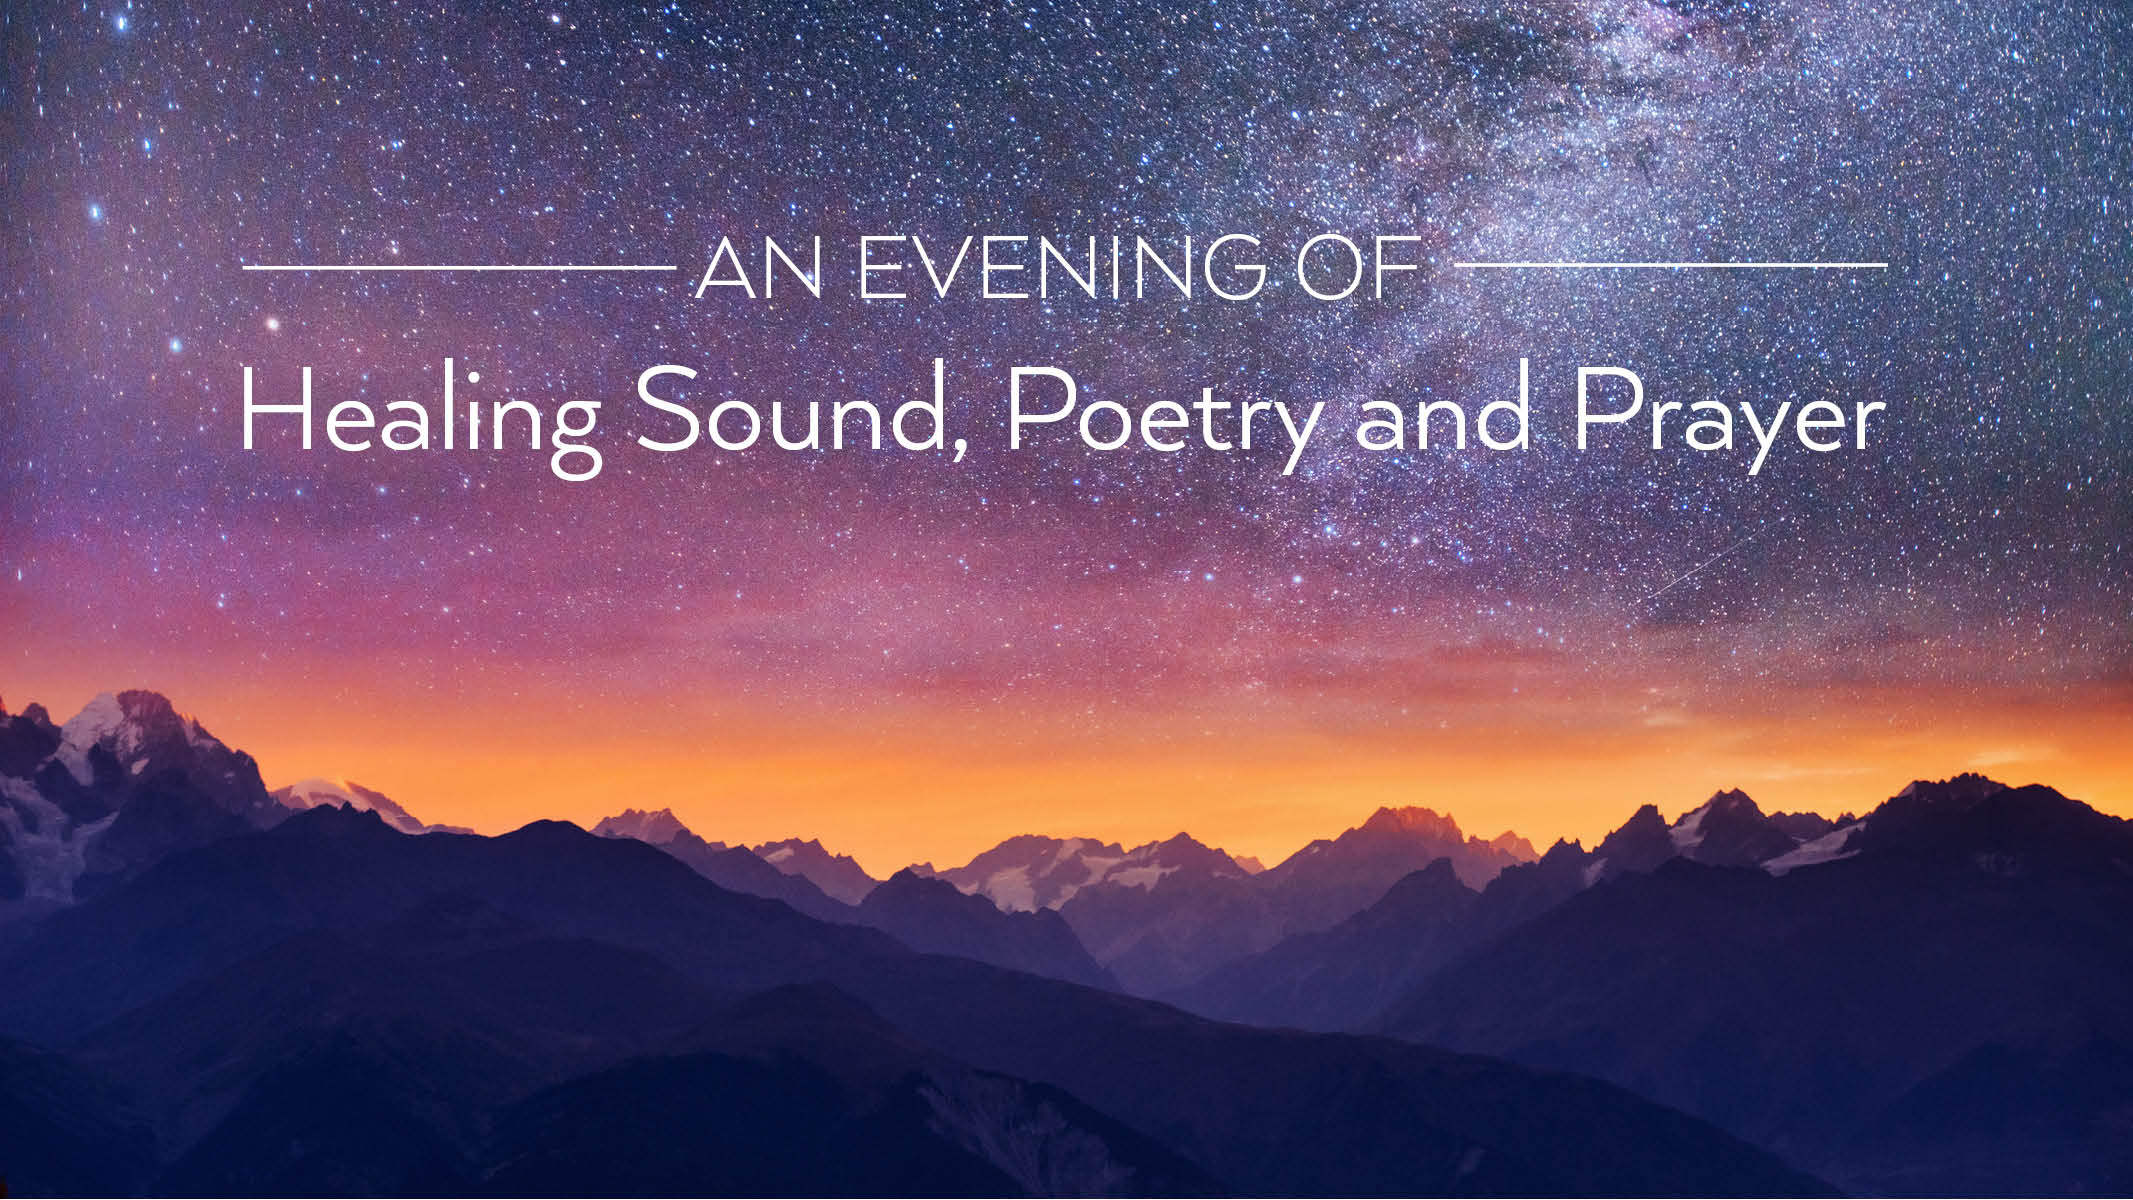 An Evening of Healing Sound